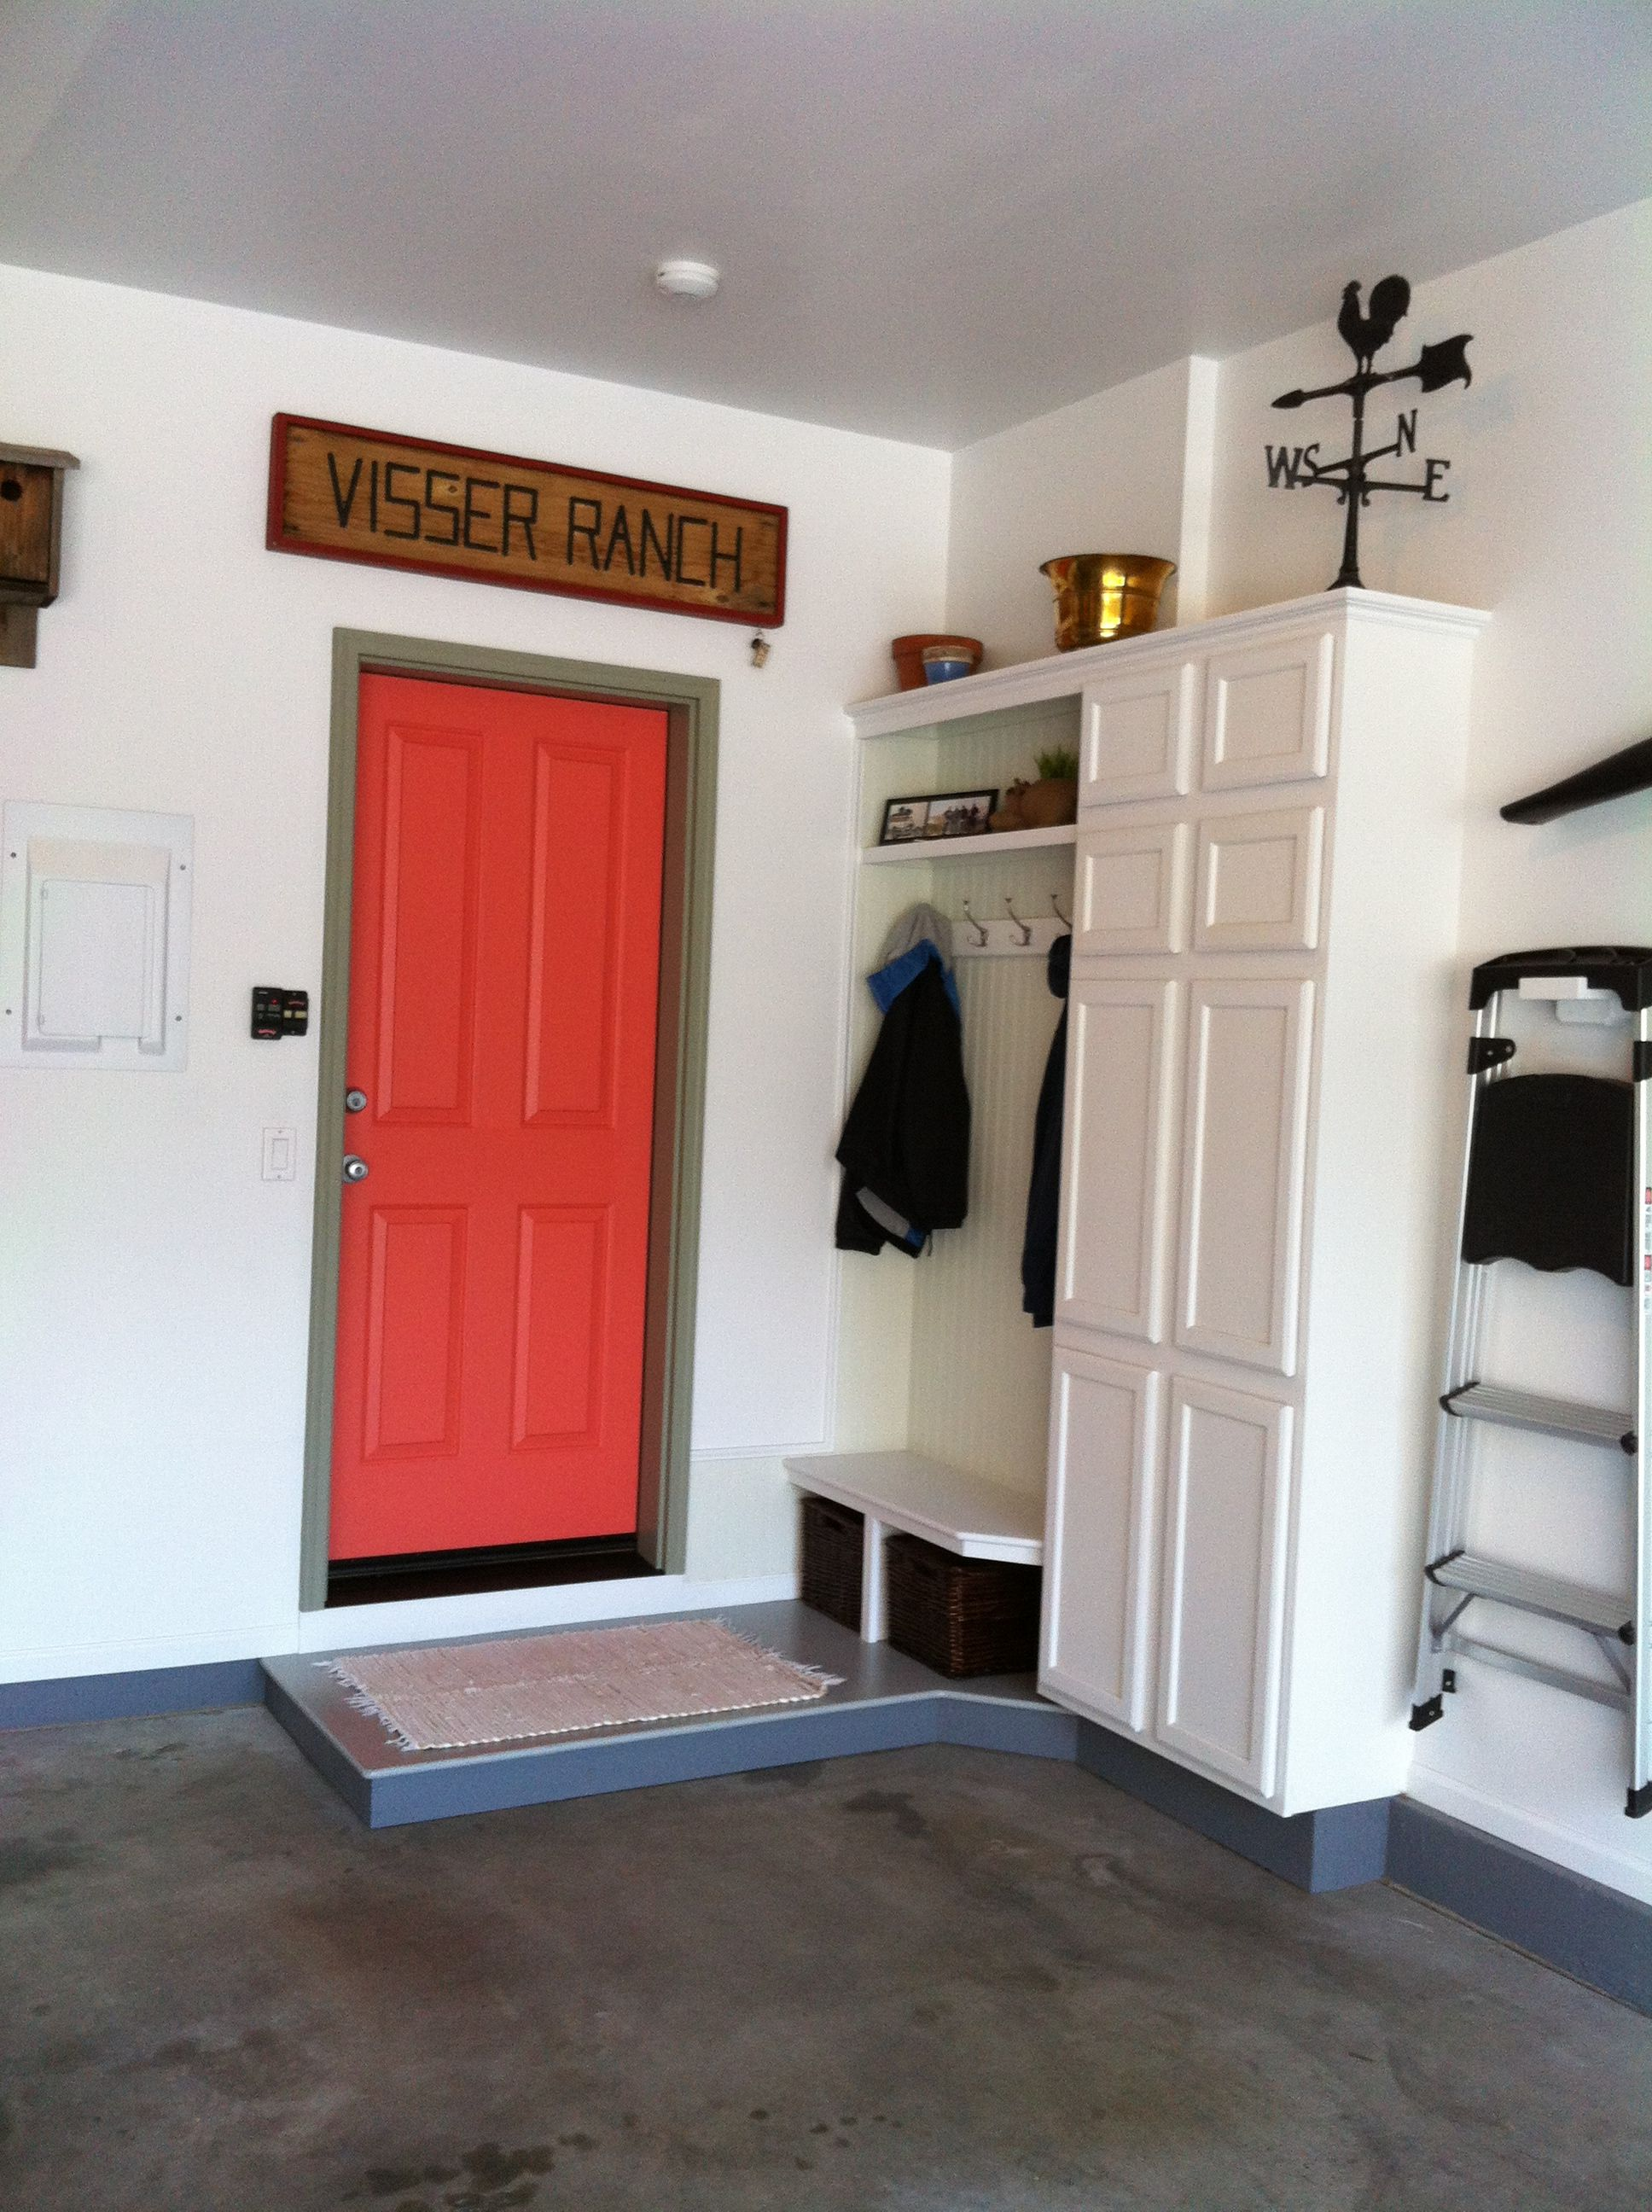 Pin By Tricia Tanguy On Buford In 2020 Diy Garage Door Garage